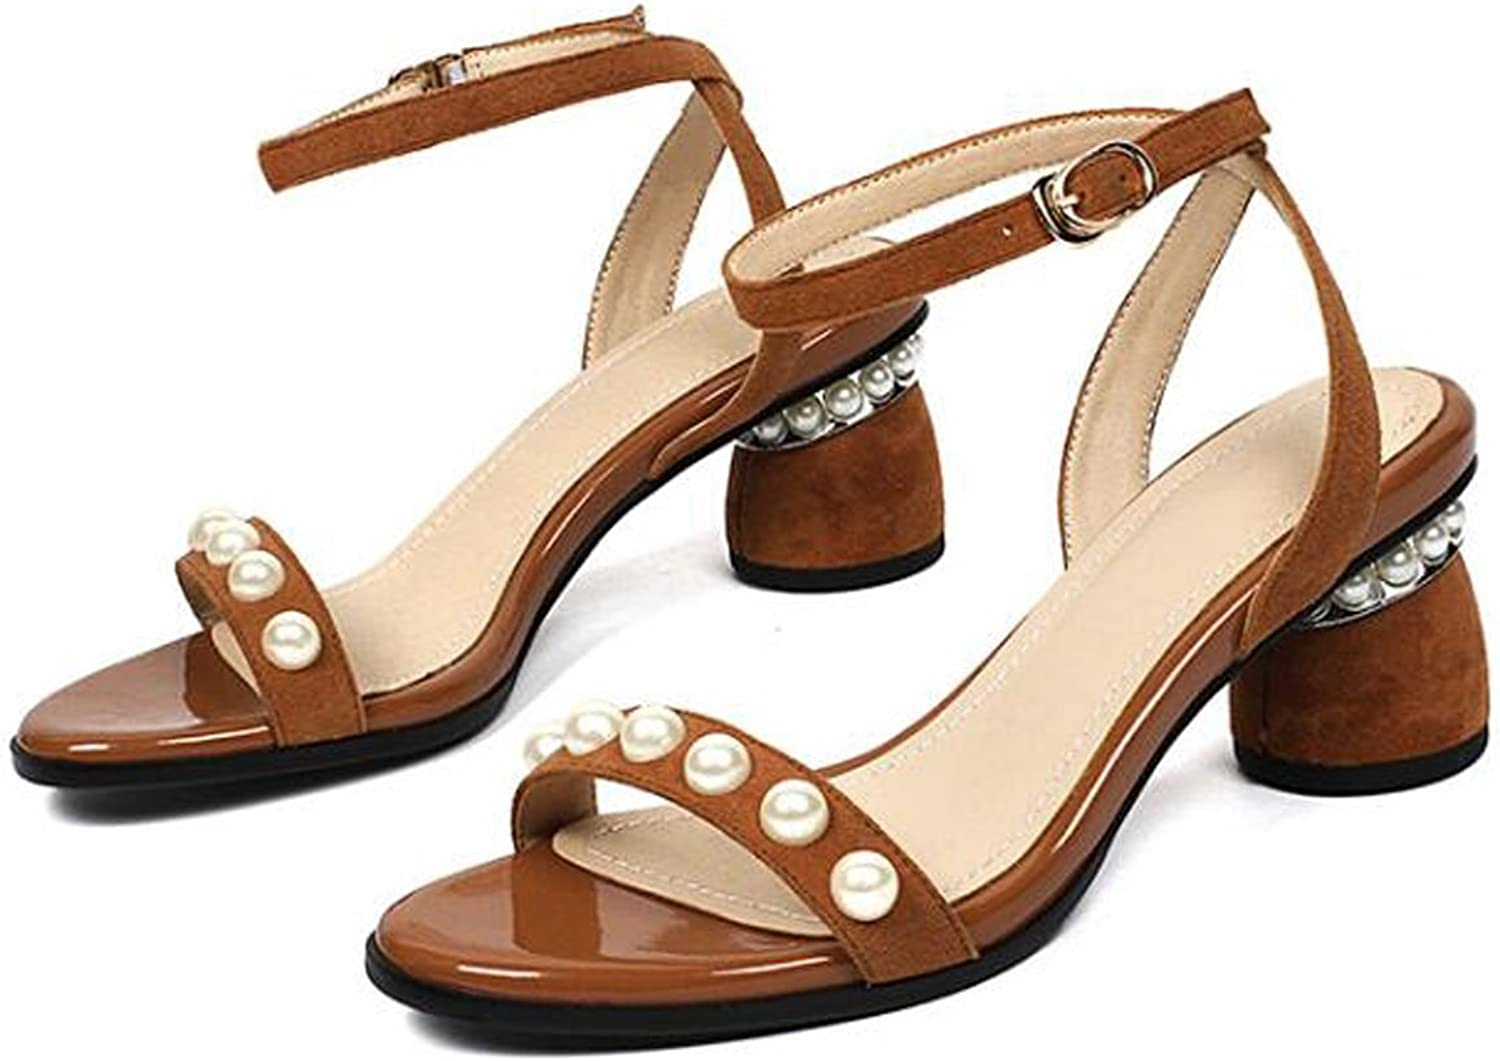 Women's Sandals Peep-Toe Sandals Pearl Decoration shoes Women's Elegant Ankle Strap Cross-Tie Straps Thick Heel Thick with Sandals